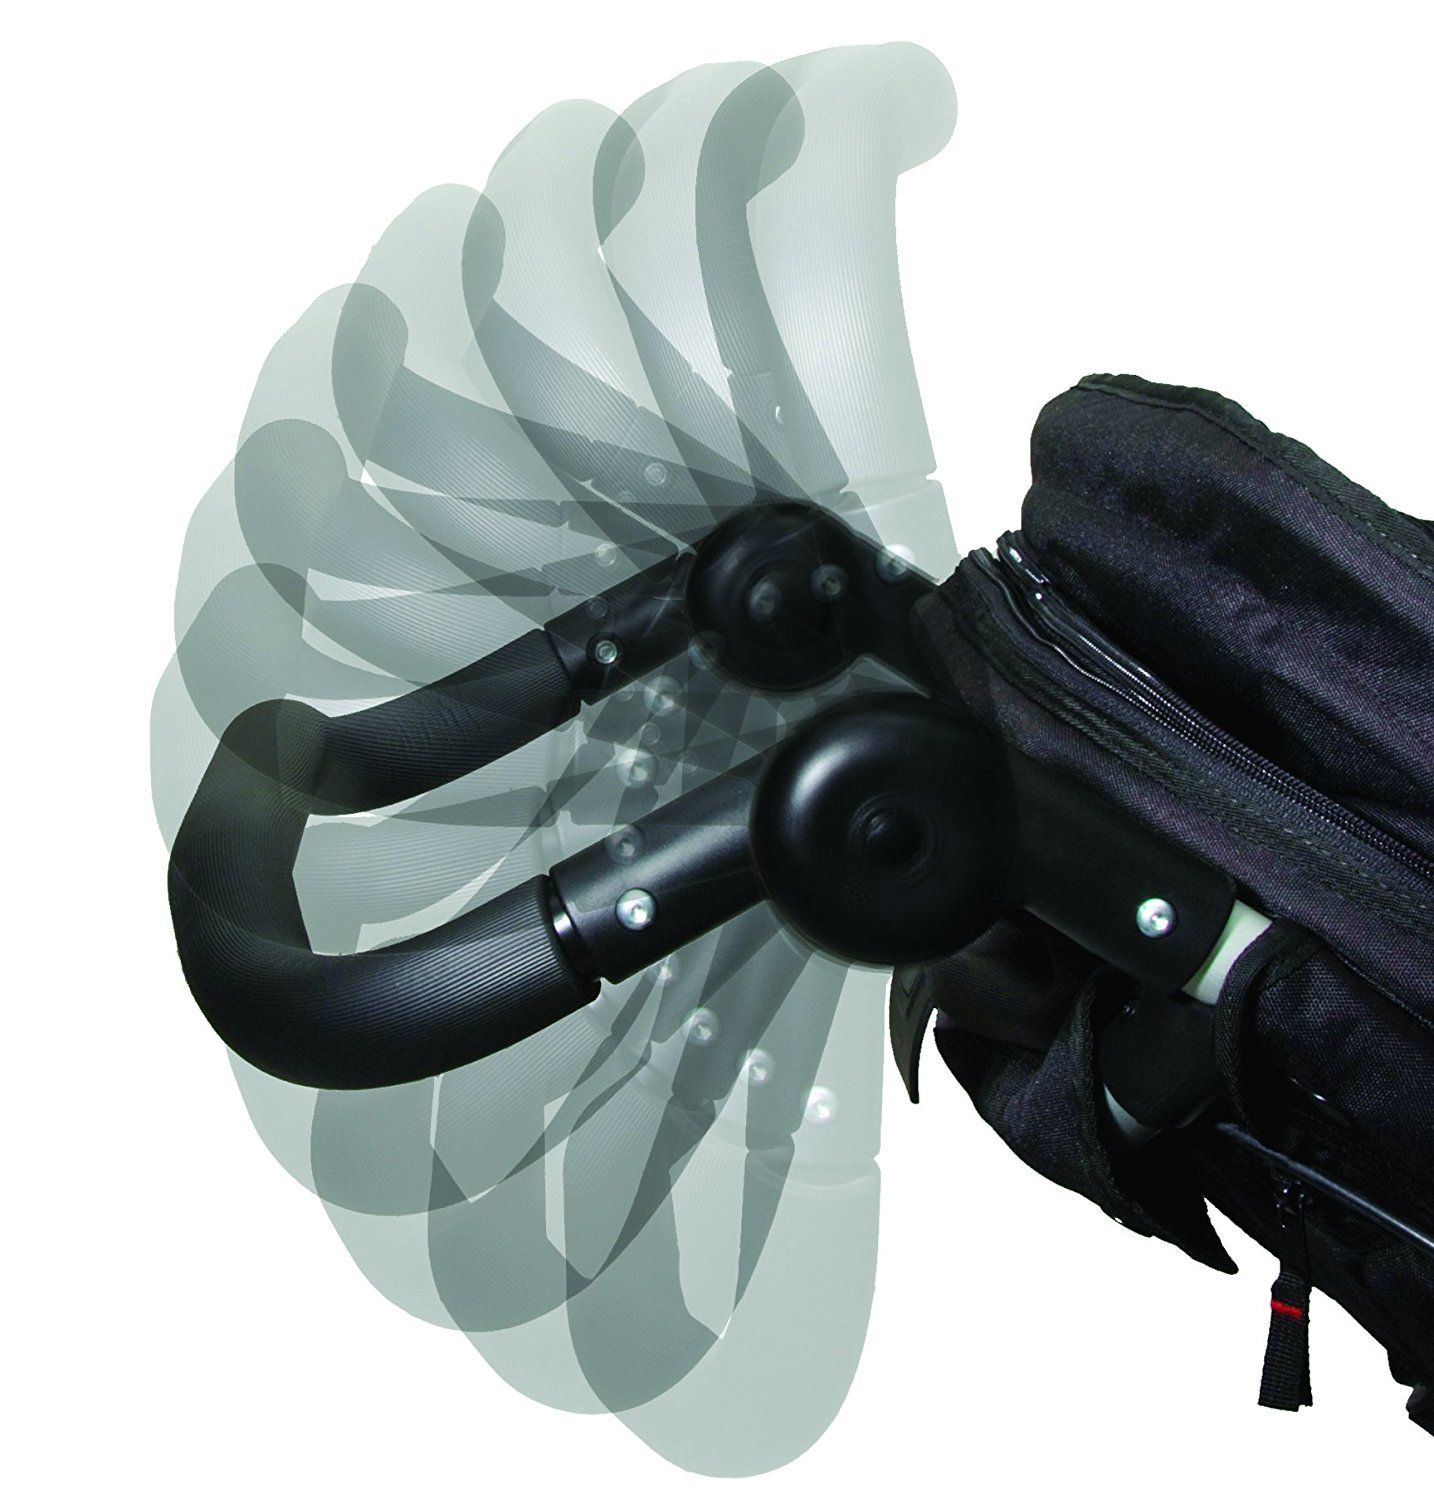 Mountain Buggy Duet adjustable handlebar